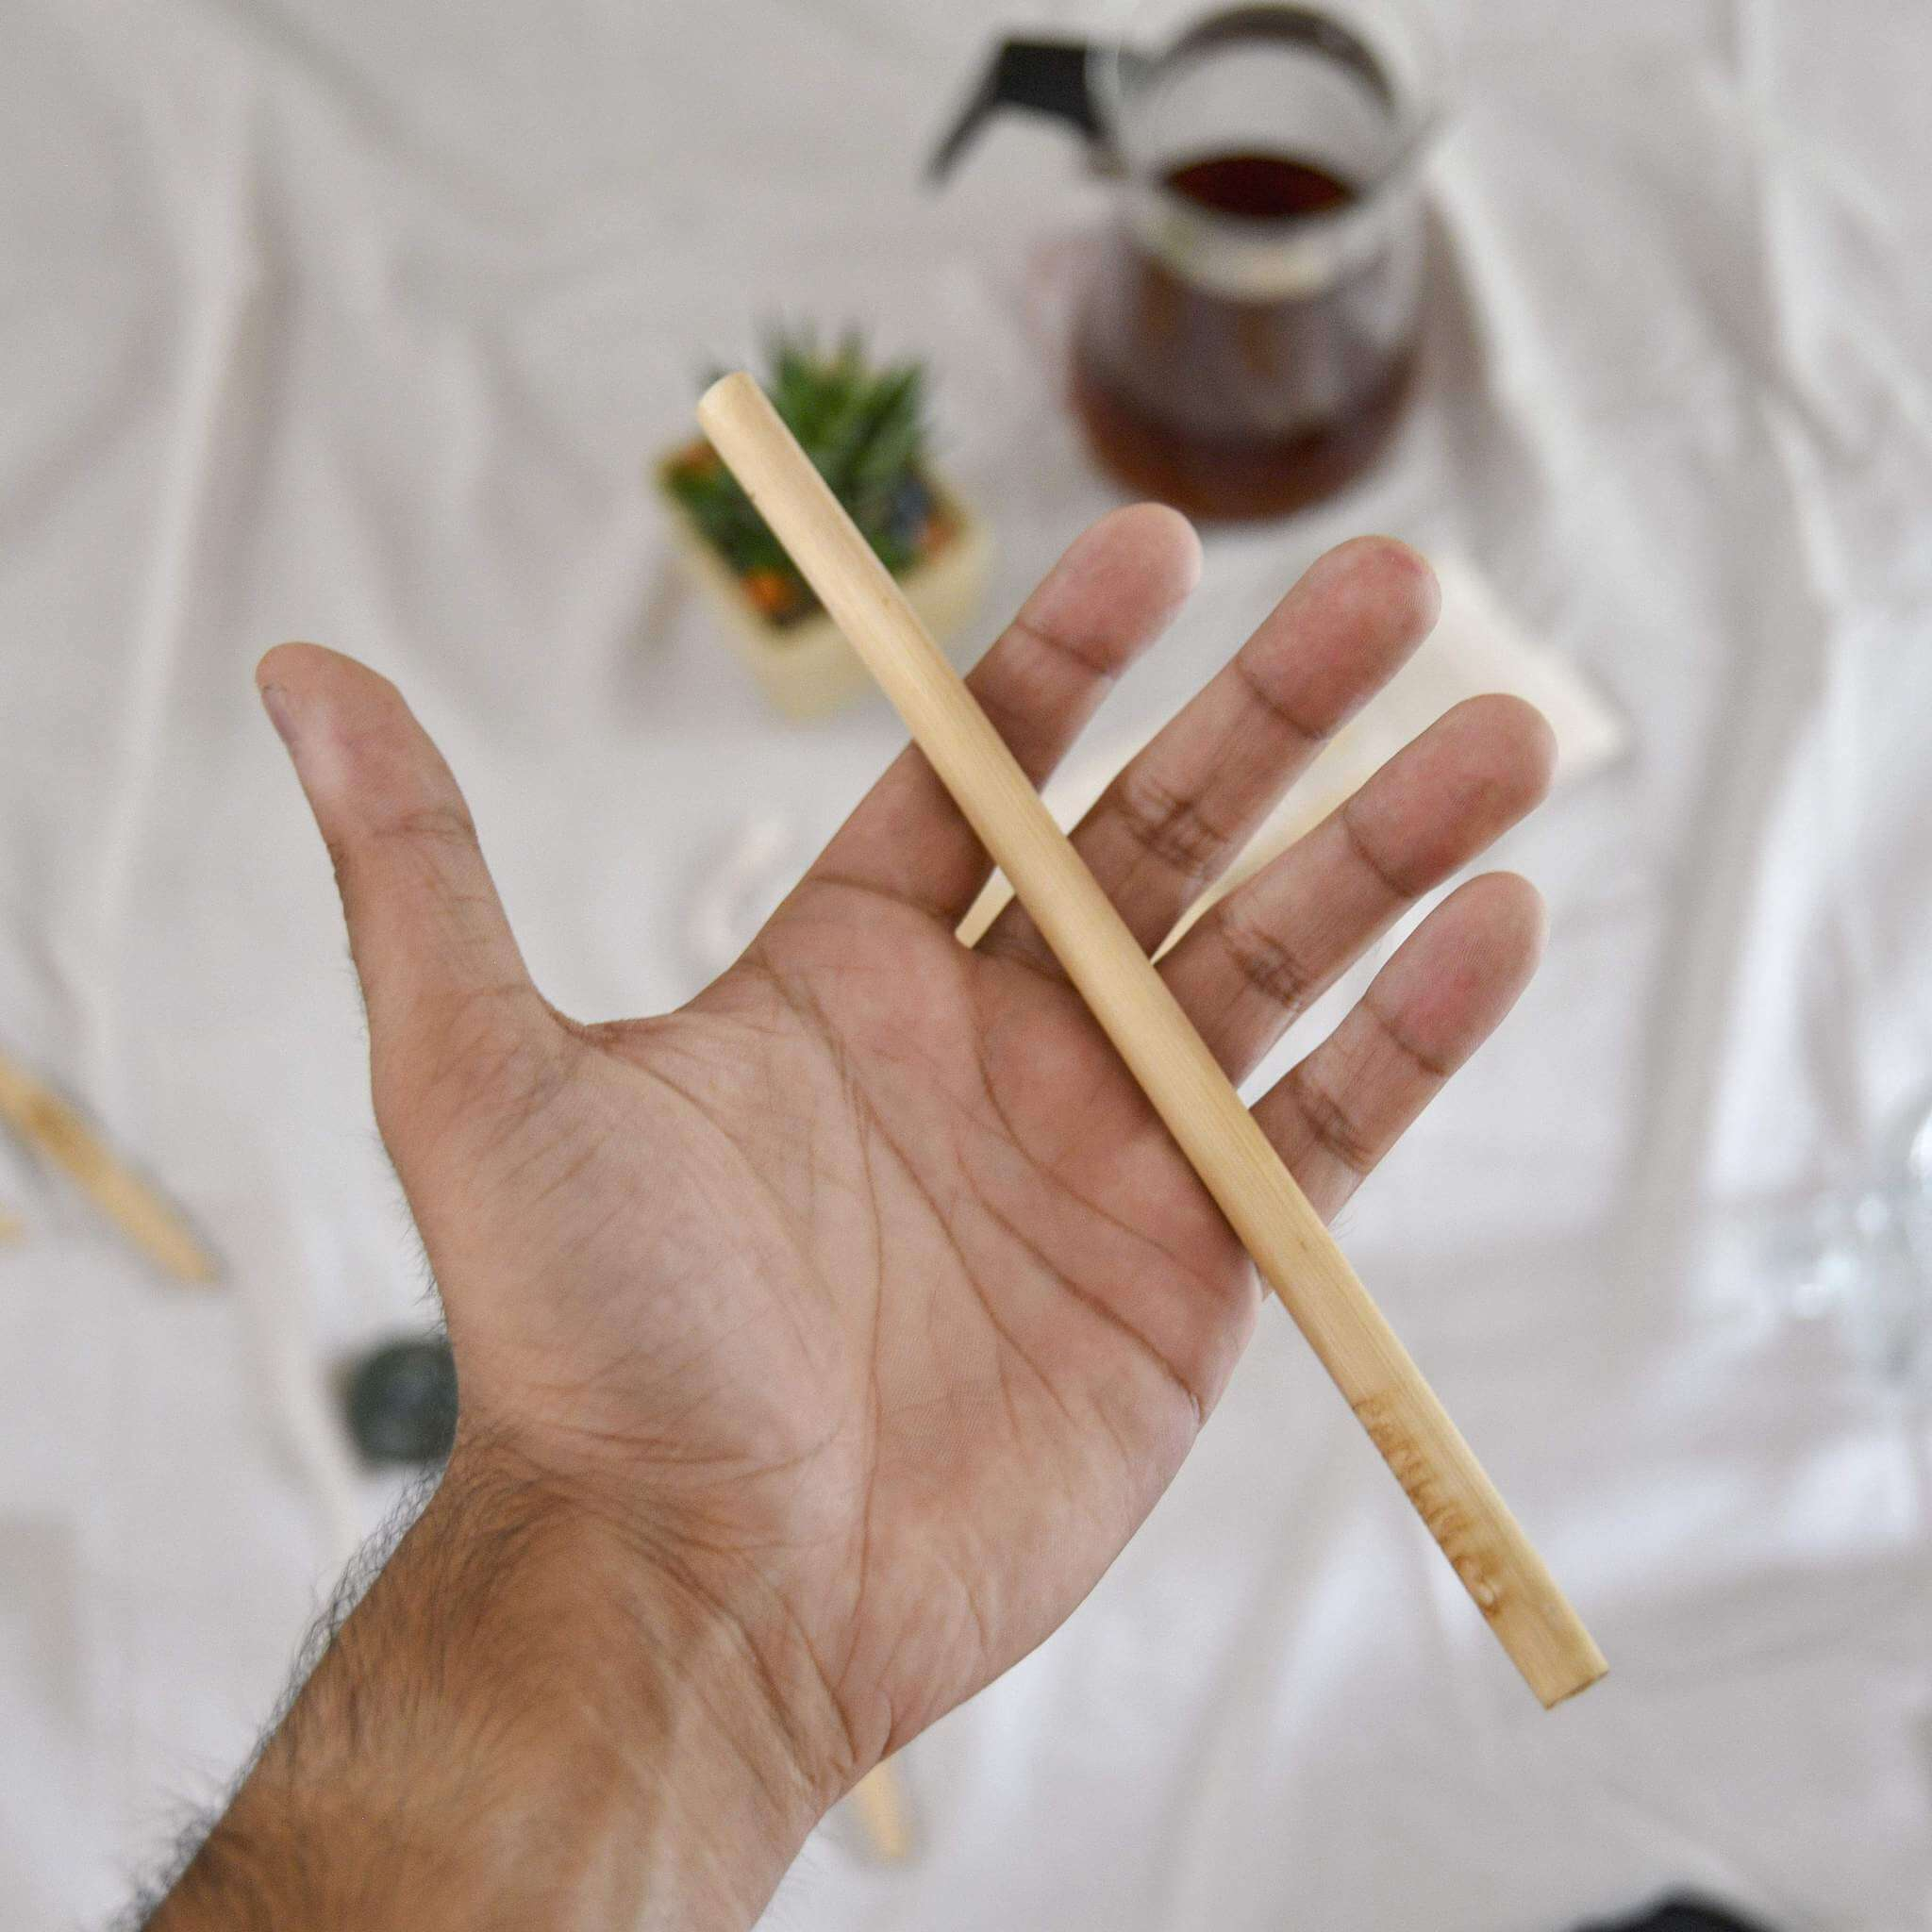 Bamboo straws with cleaner